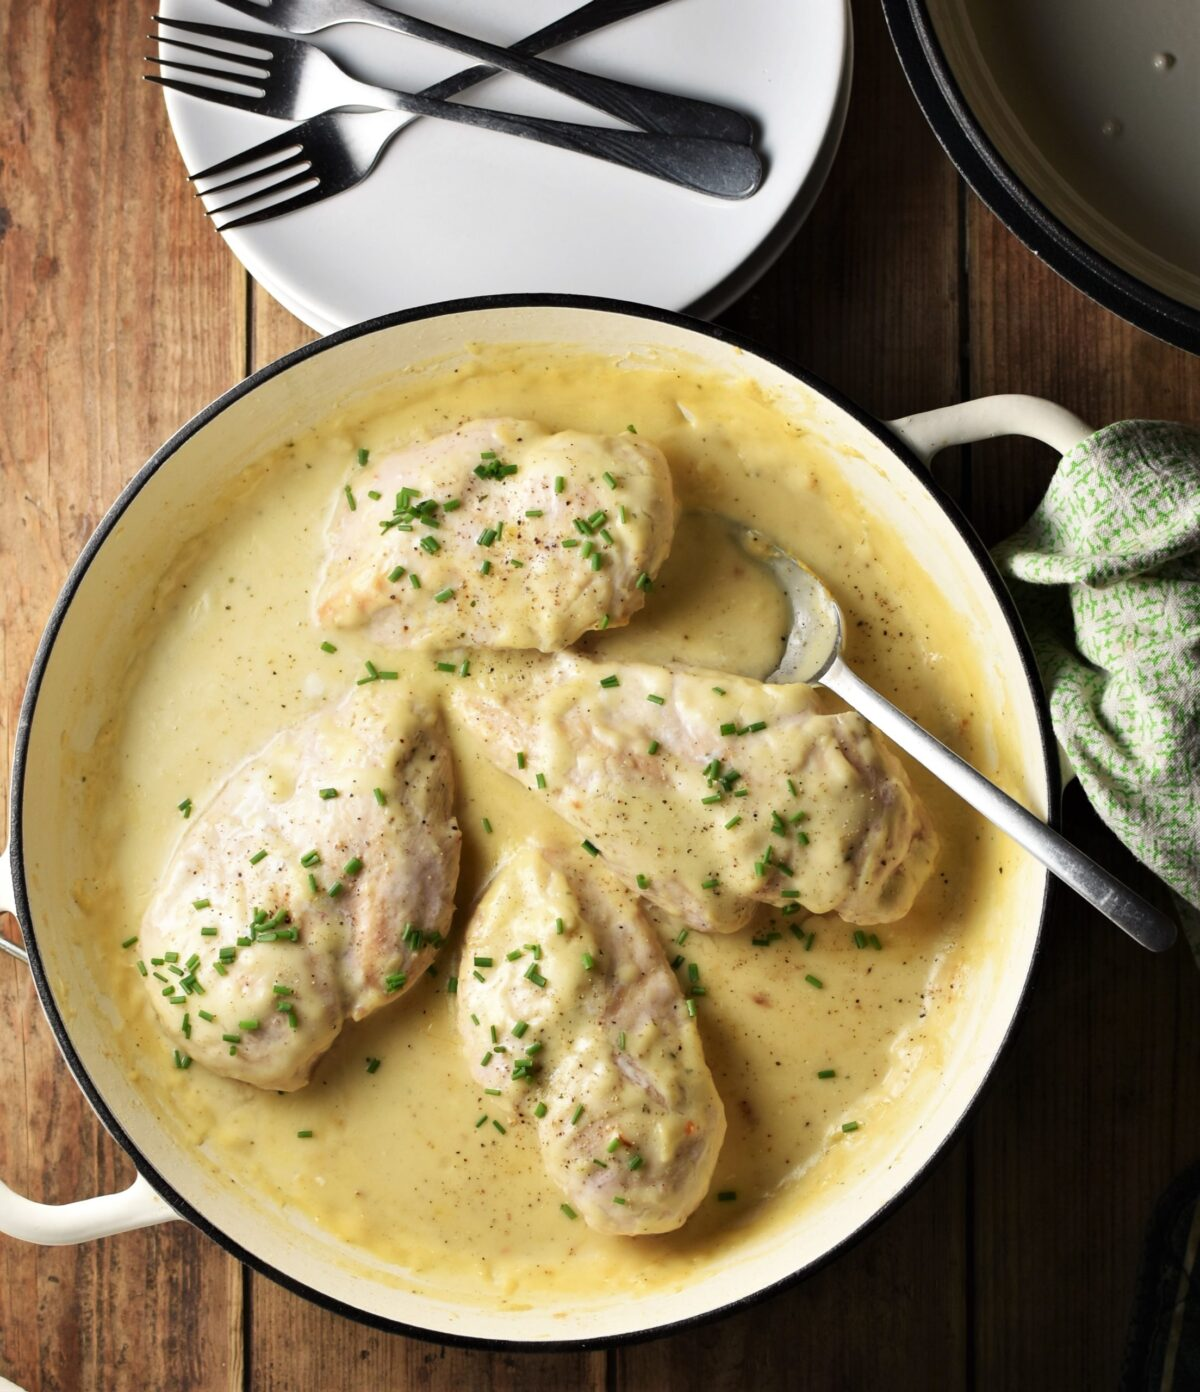 4 chicken breasts with chopped chives in large shallow white pan with spoon, green cloth to the right and plates with forks at the top.